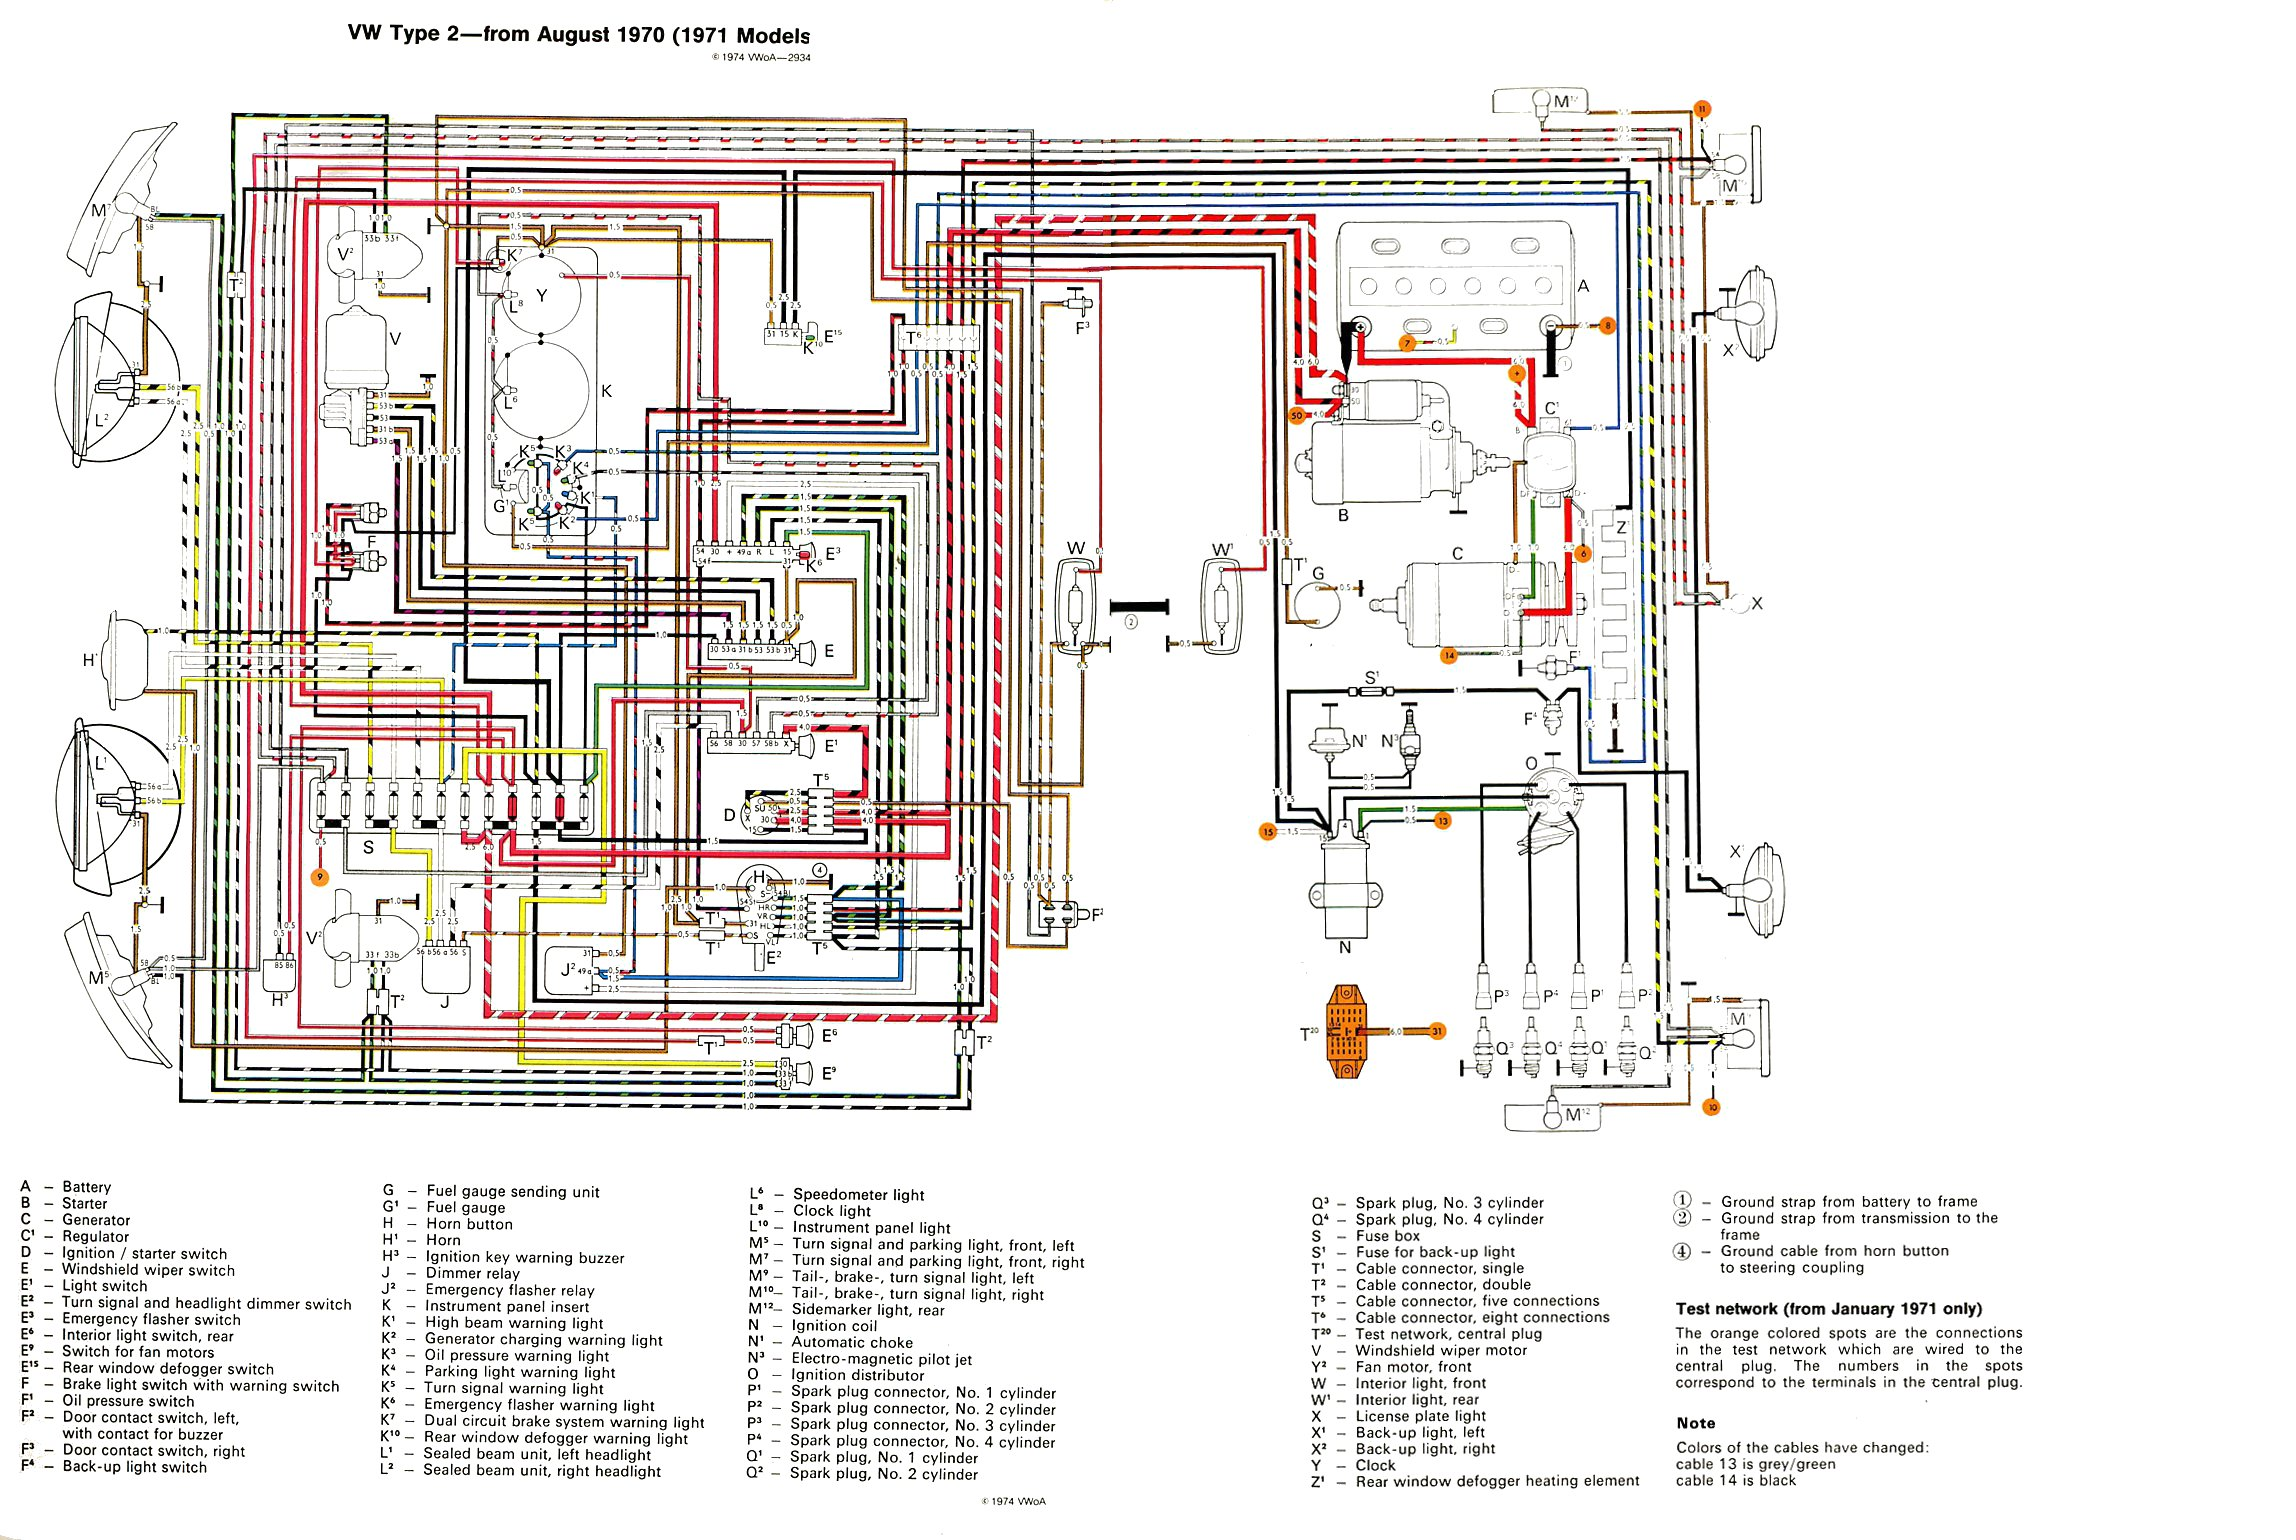 baybus_71 thesamba com type 2 wiring diagrams Ford Alternator Wiring Diagram at bakdesigns.co